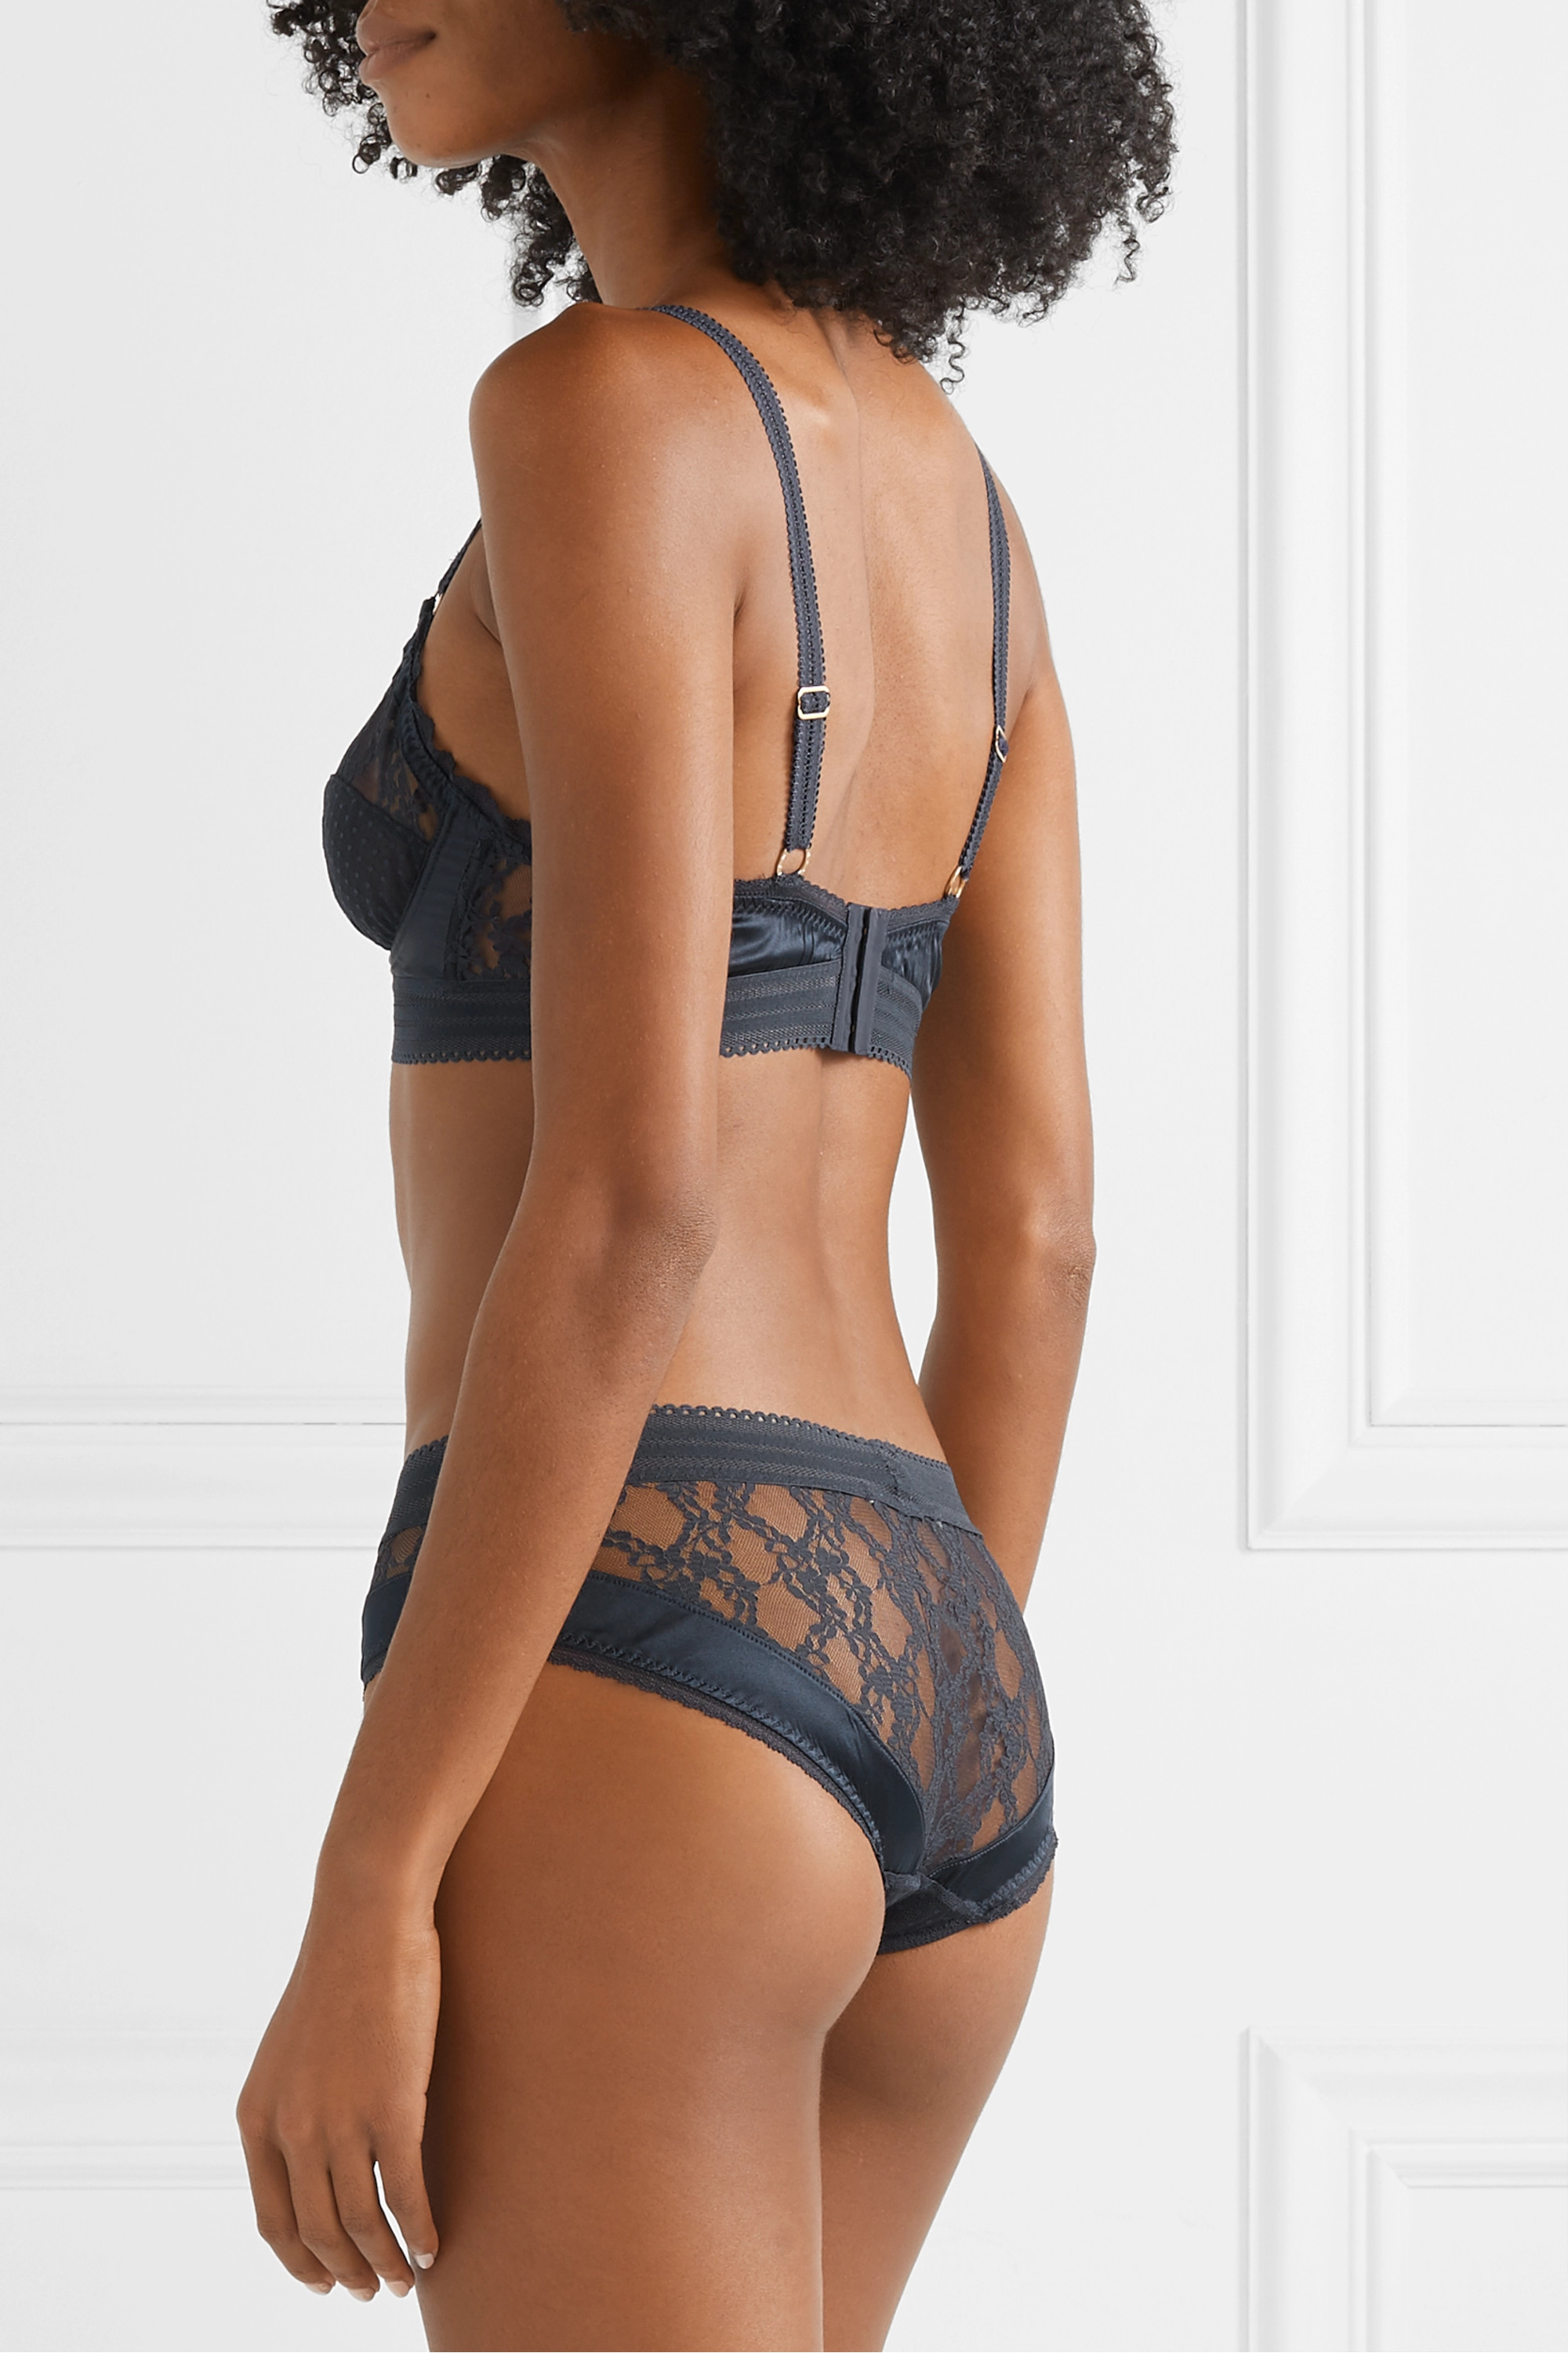 Stella McCartney Stephanie Cherishing satin-trimmed point d'esprit tulle and lace briefs